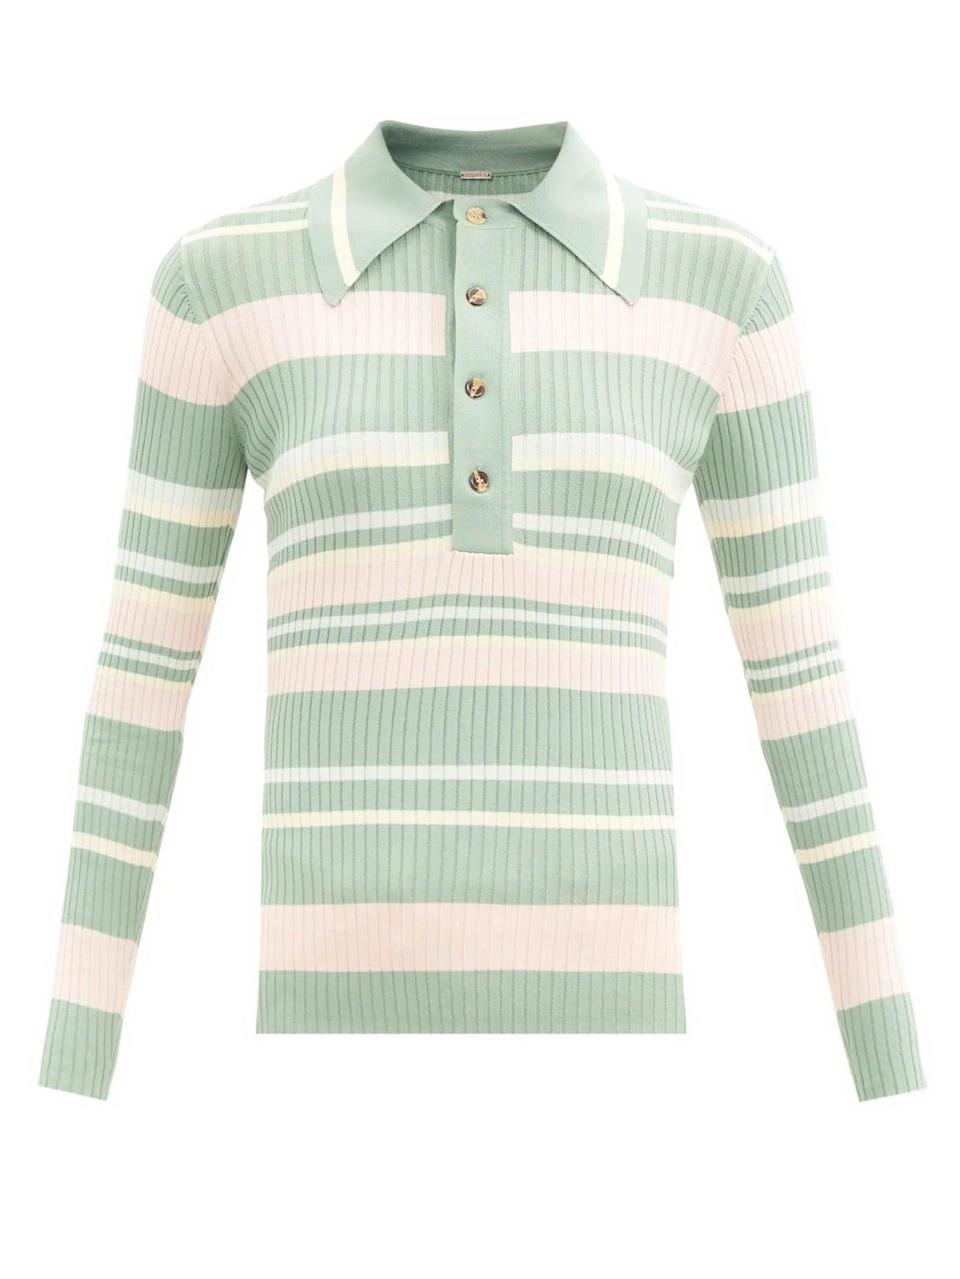 """<br><br><strong>Dodo Bar Or</strong> Penny Striped Rib-Knitted Polo Sweater, $, available at <a href=""""https://www.matchesfashion.com/products/Dodo-Bar-Or-Penny-striped-rib-knitted-polo-sweater-1382543"""" rel=""""nofollow noopener"""" target=""""_blank"""" data-ylk=""""slk:Matches Fashion"""" class=""""link rapid-noclick-resp"""">Matches Fashion</a>"""